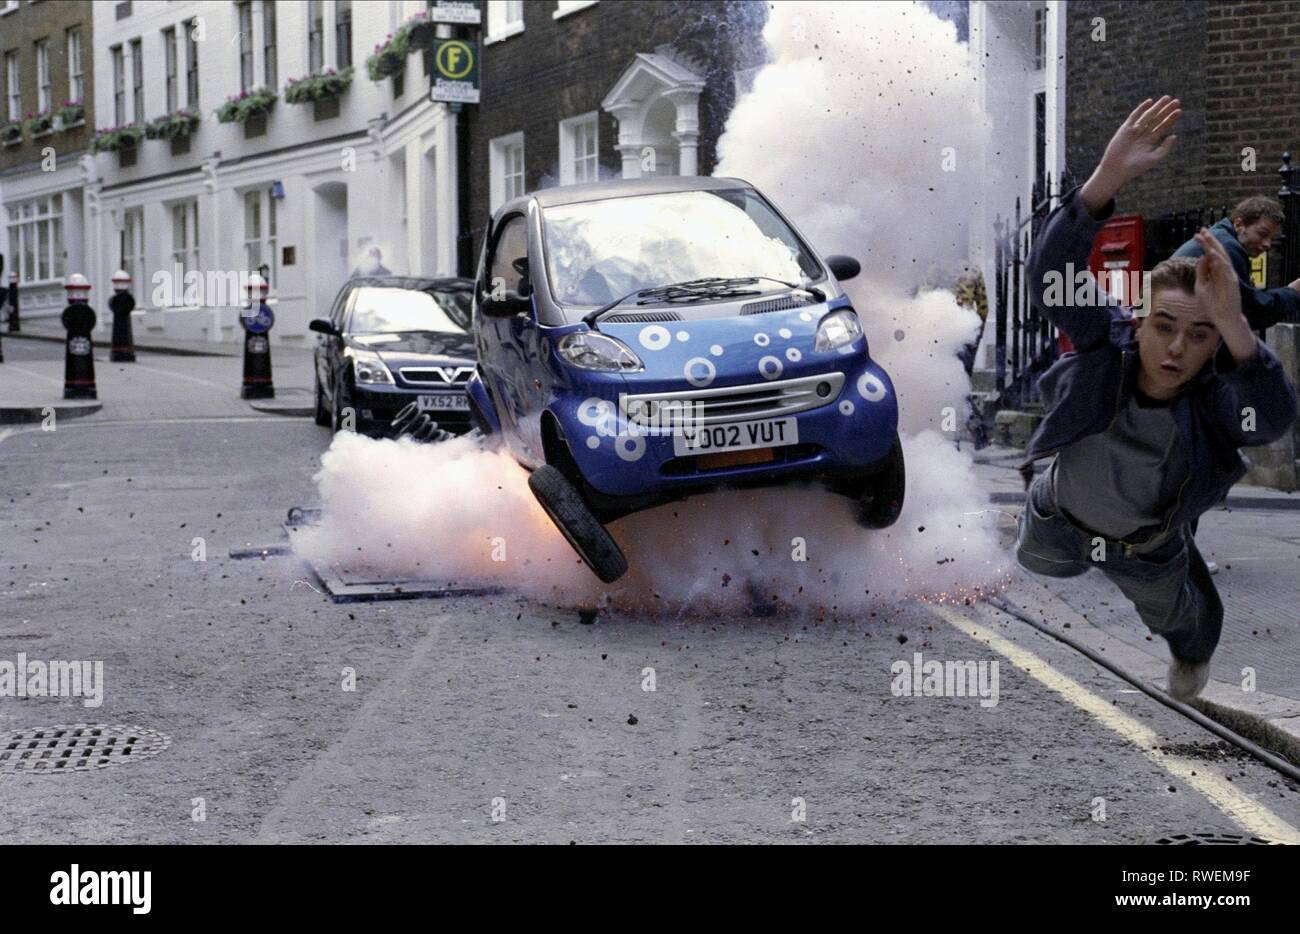 FRANKIE MUNIZ,EXPLODING CAR, AGENT CODY BANKS 2: DESTINATION LONDON, 2004 - Stock Image